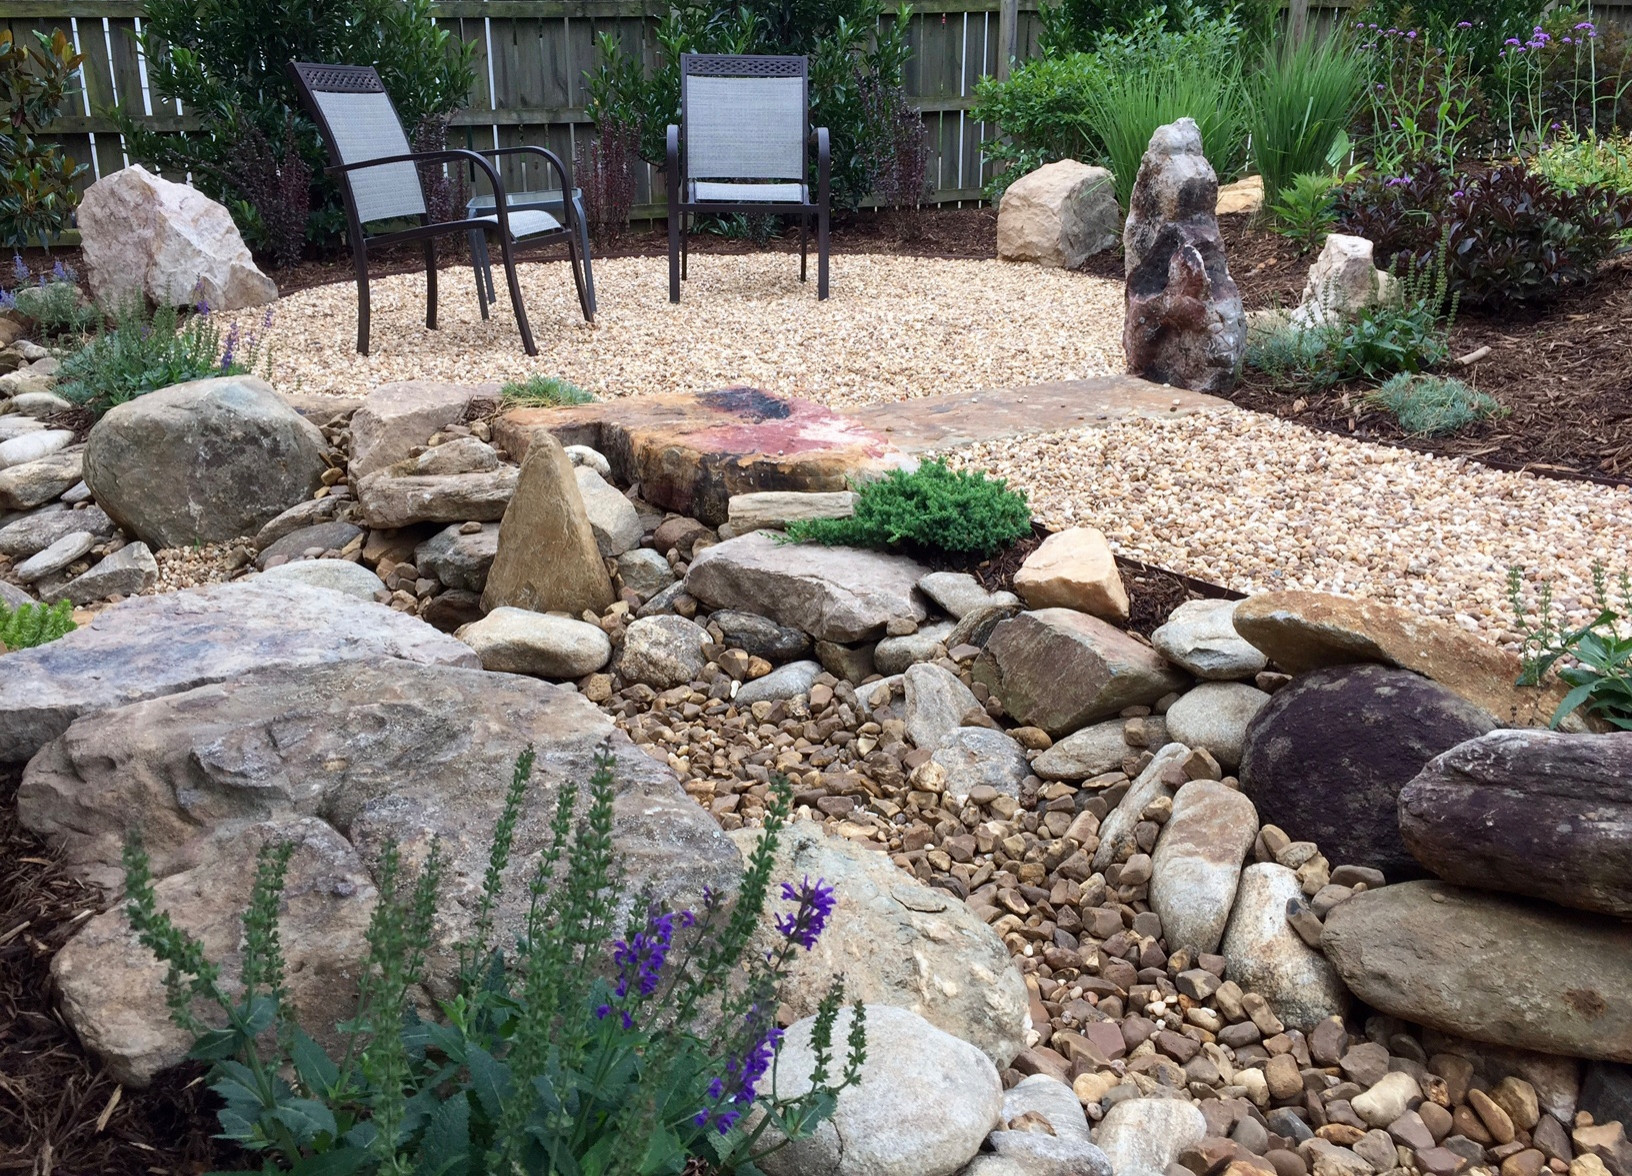 Seating area and creek bed